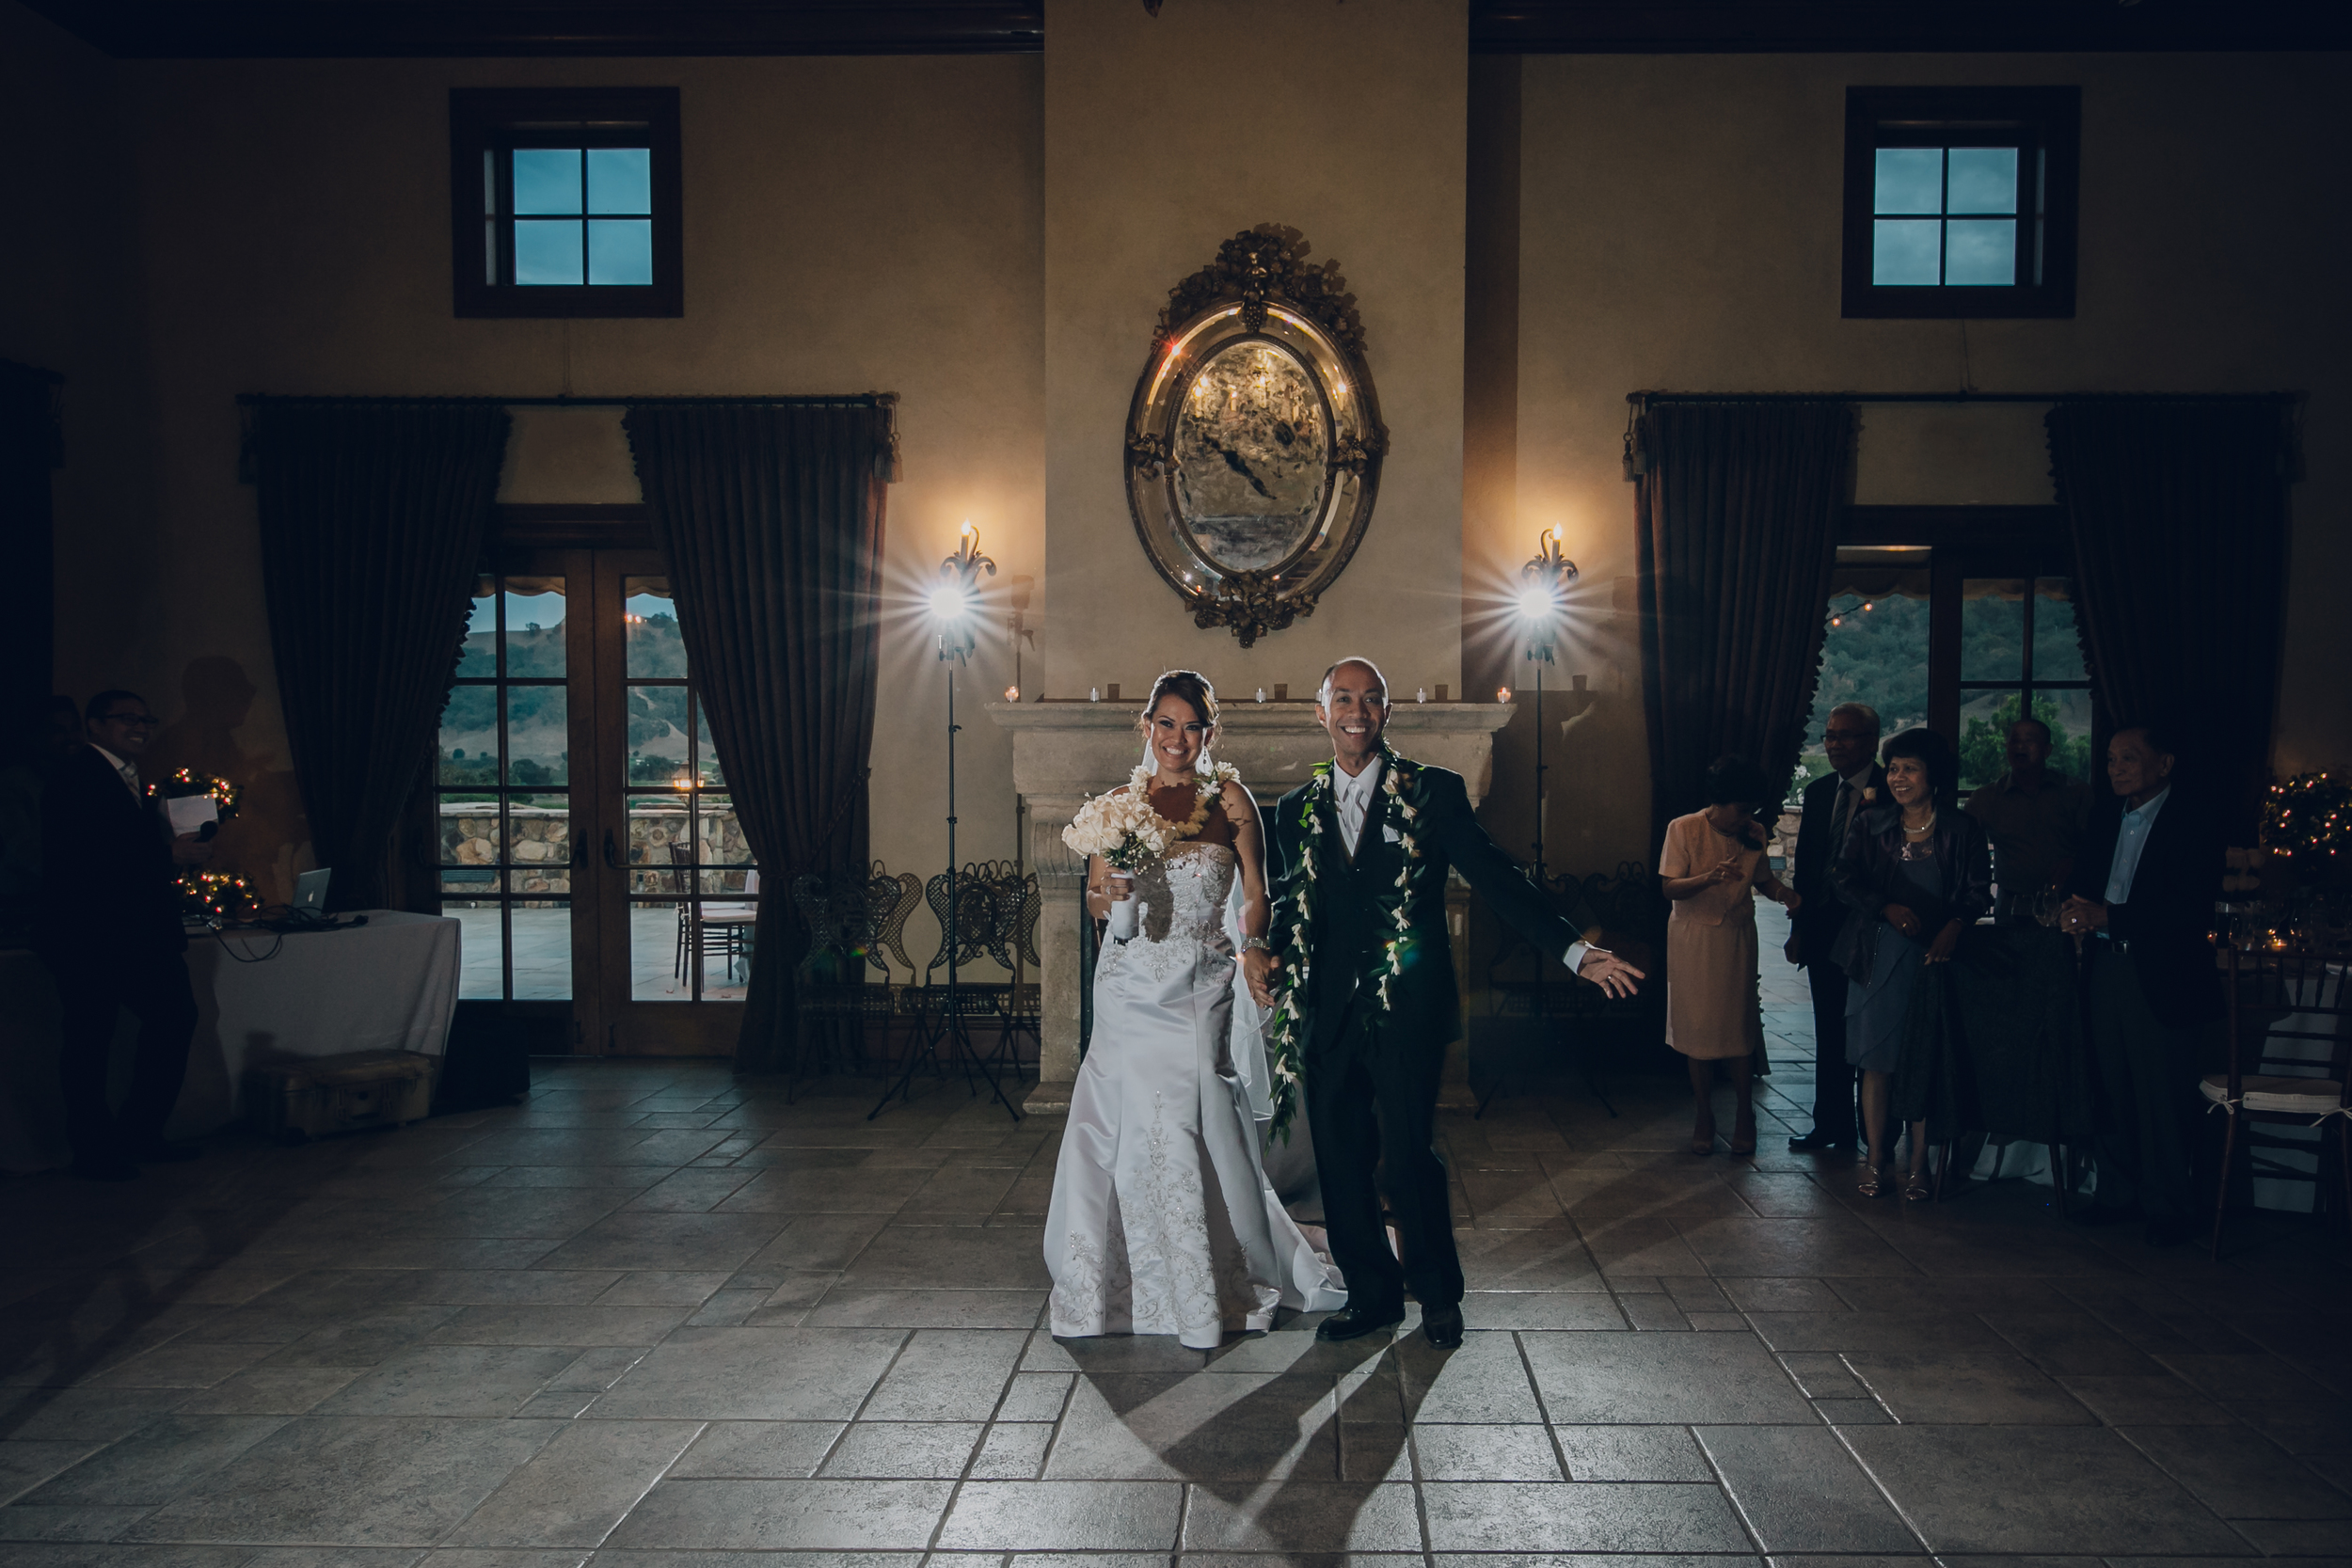 Shiela + Lester's Wedding 9-30-15 990-Edit.jpg